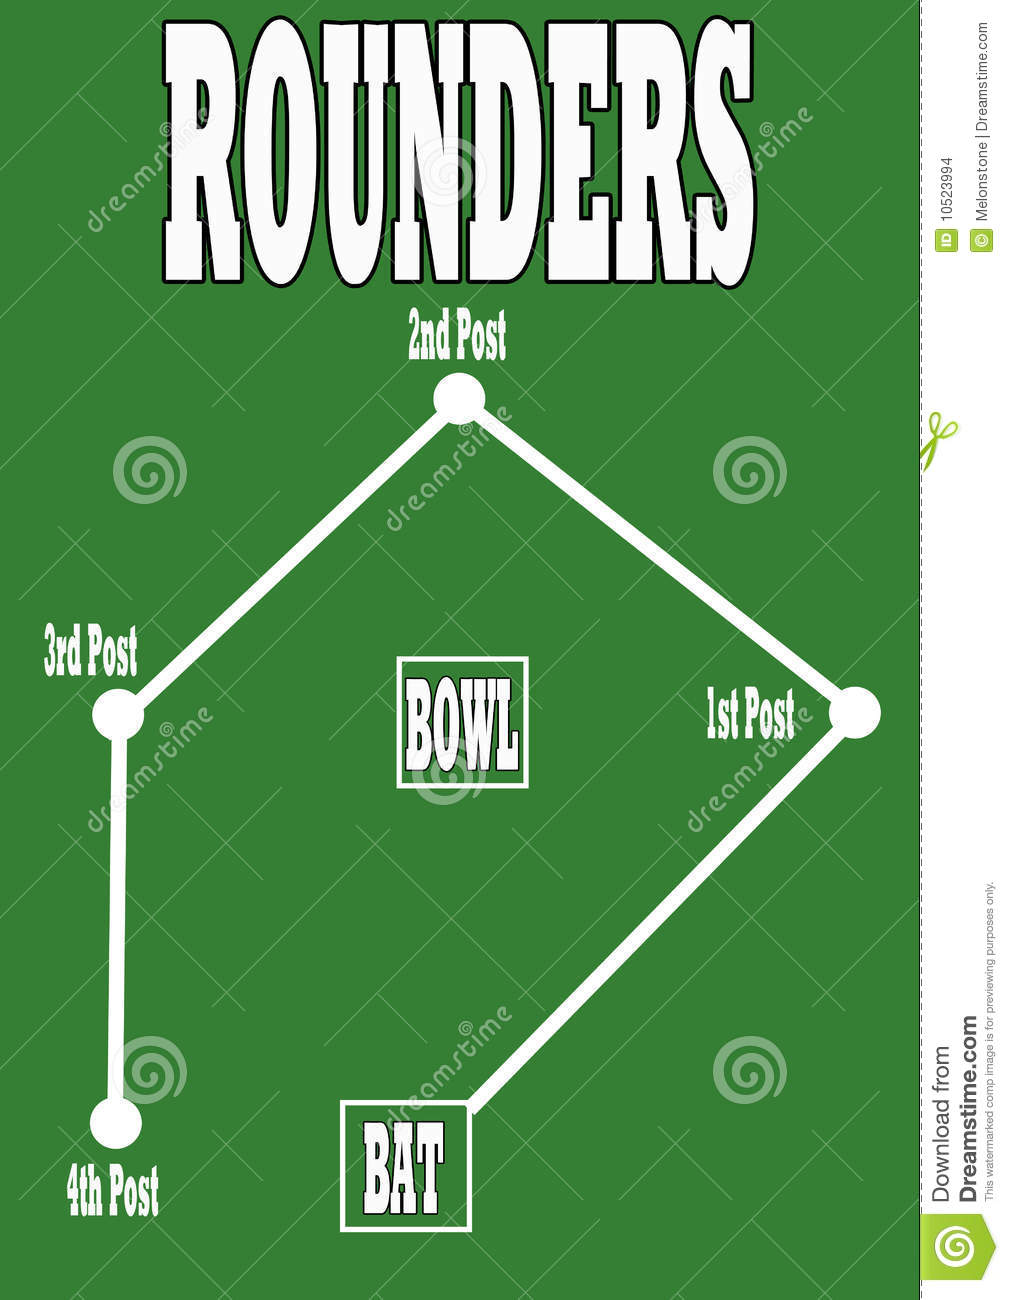 Rounders Pitch Stock Images - Image: 10523994